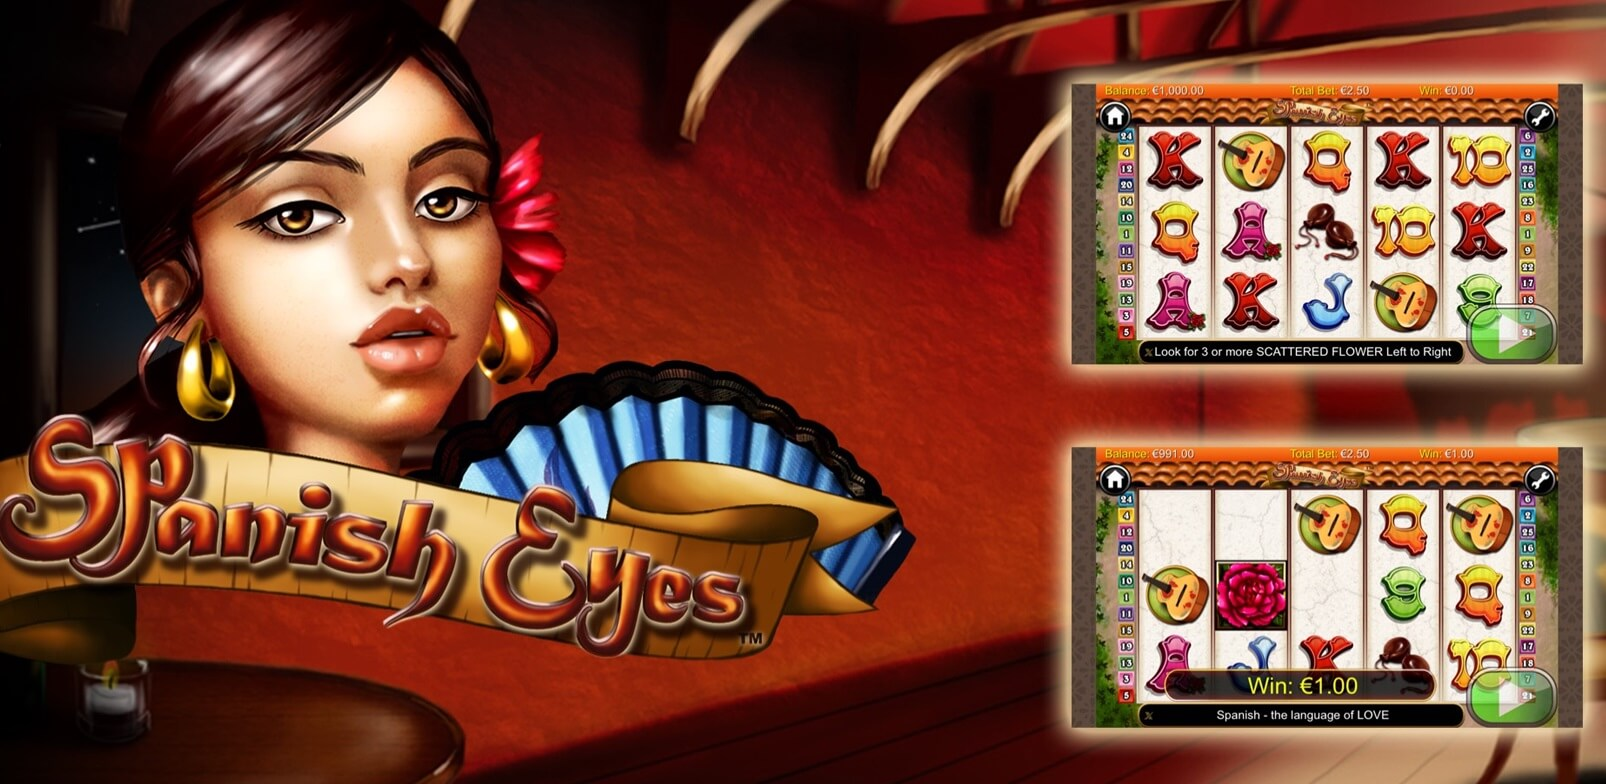 Spanish Eyes Online Slot Review & Guide for Players Online